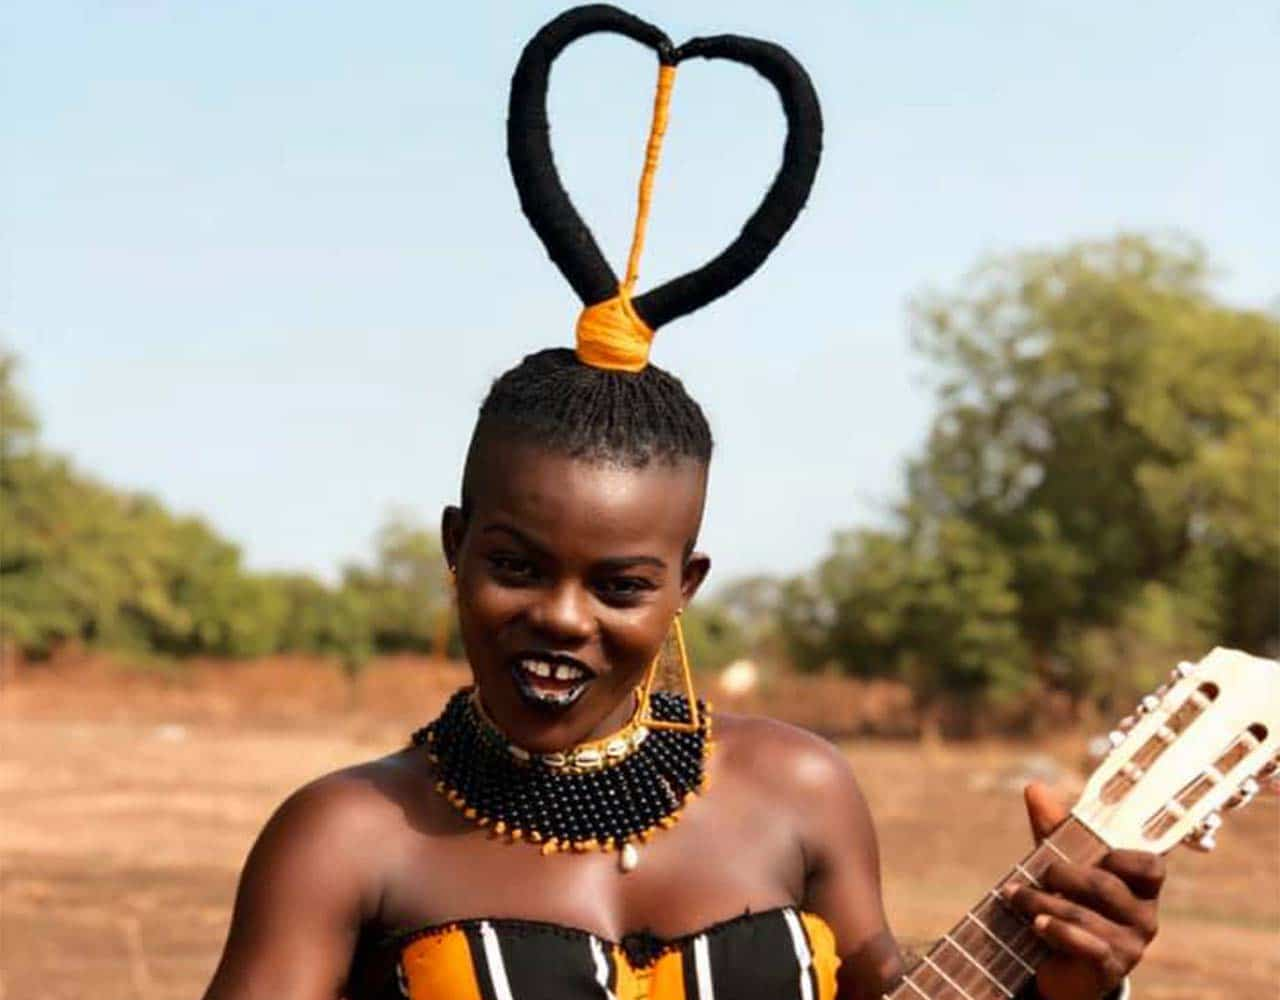 Wiyaala has called herself a villager